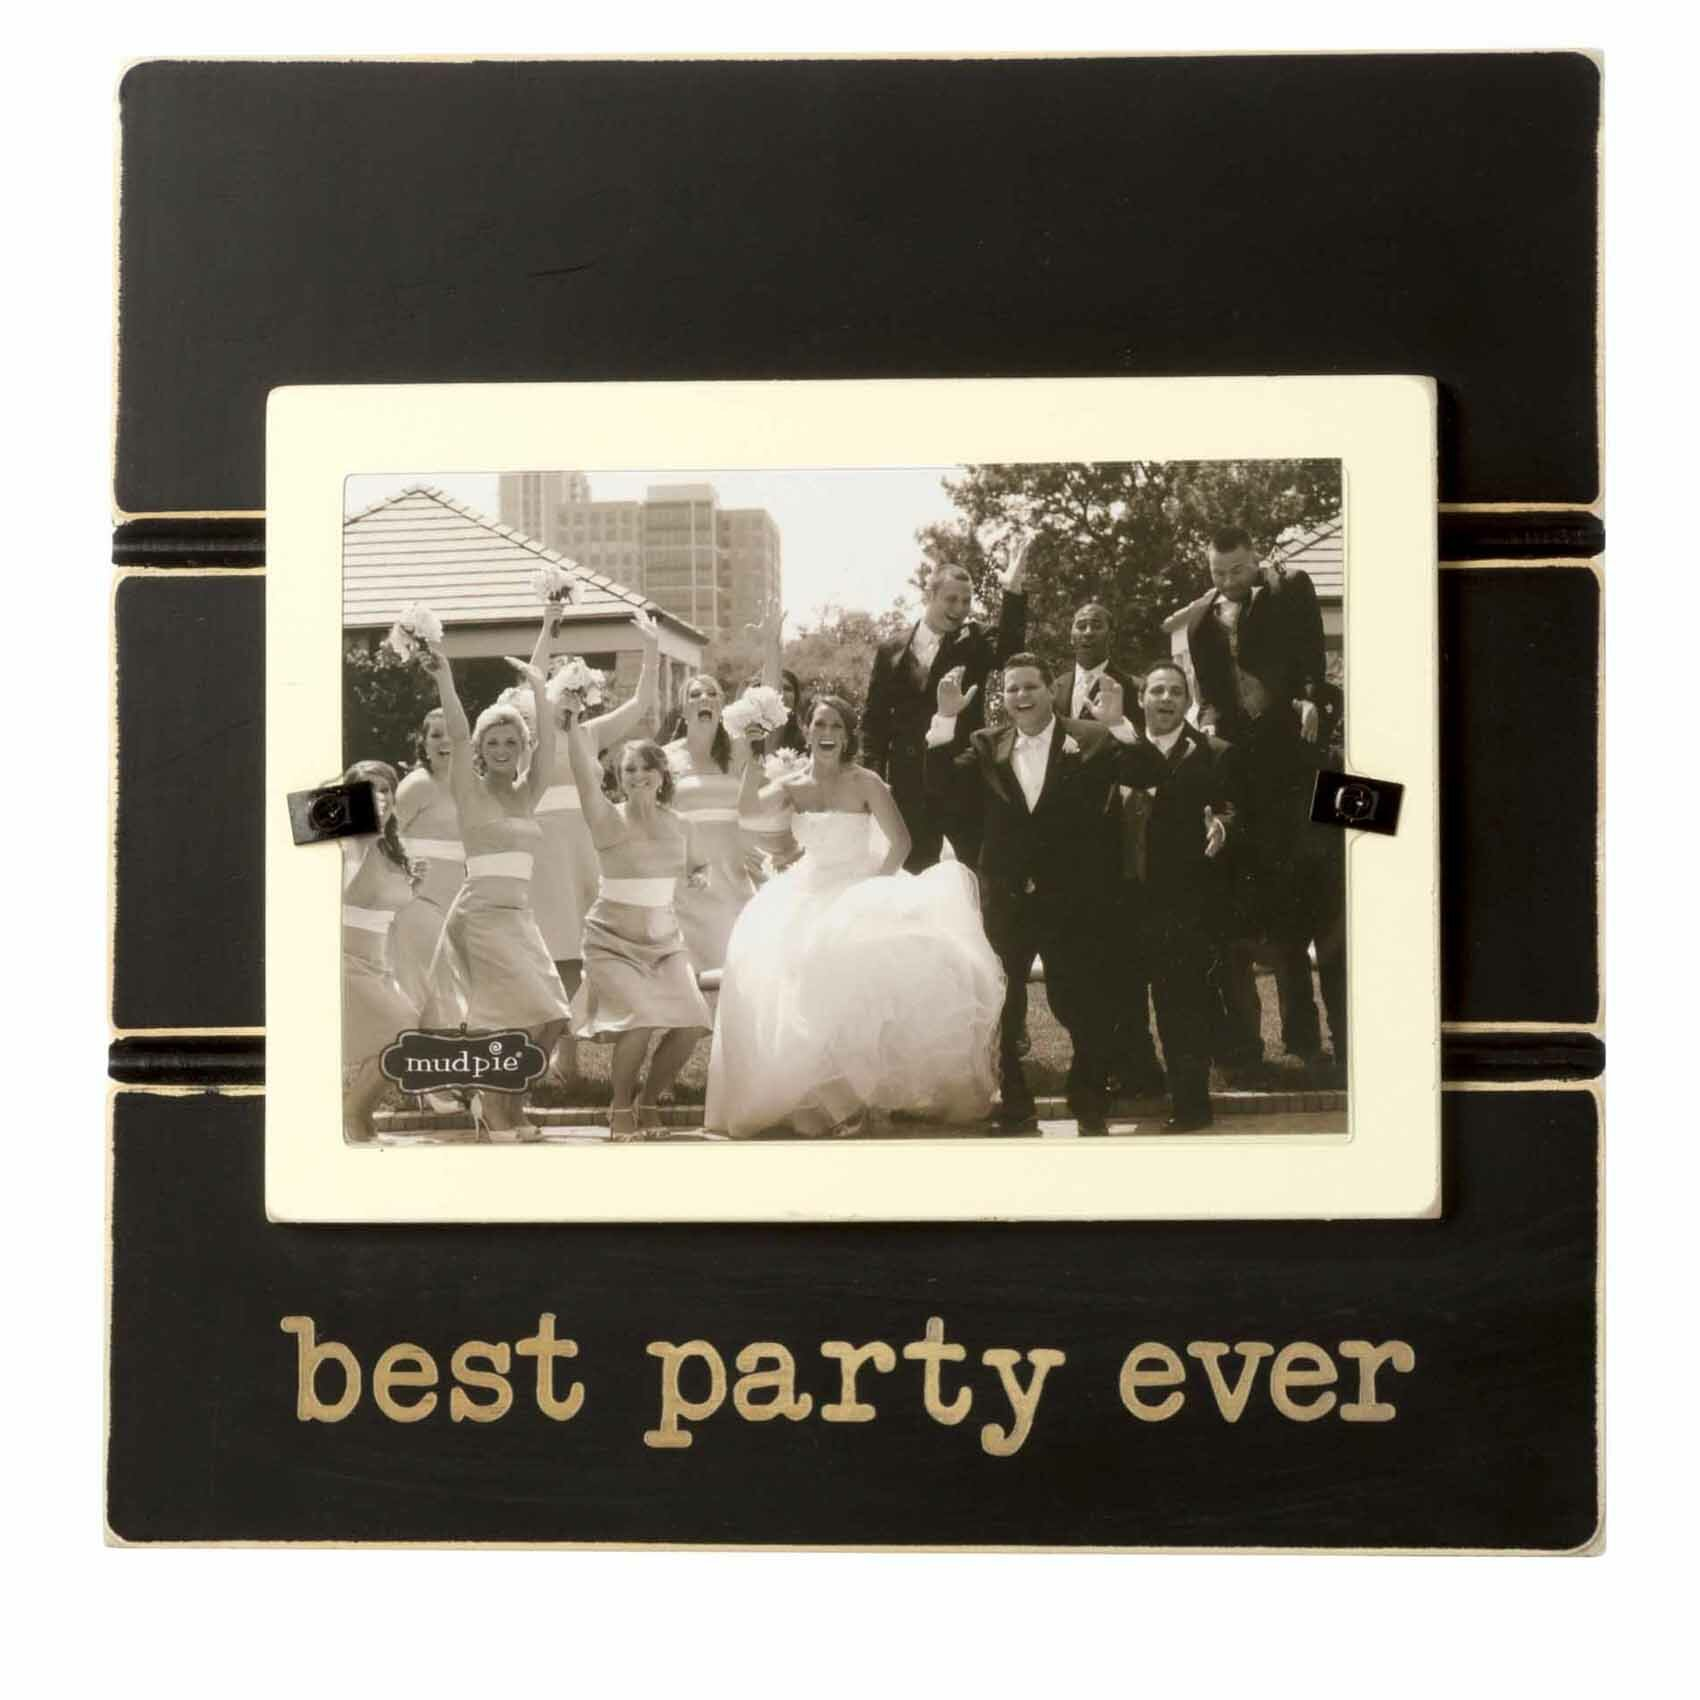 Mud Pie Wedding Best Party Ever Picture Frame Amp Reviews